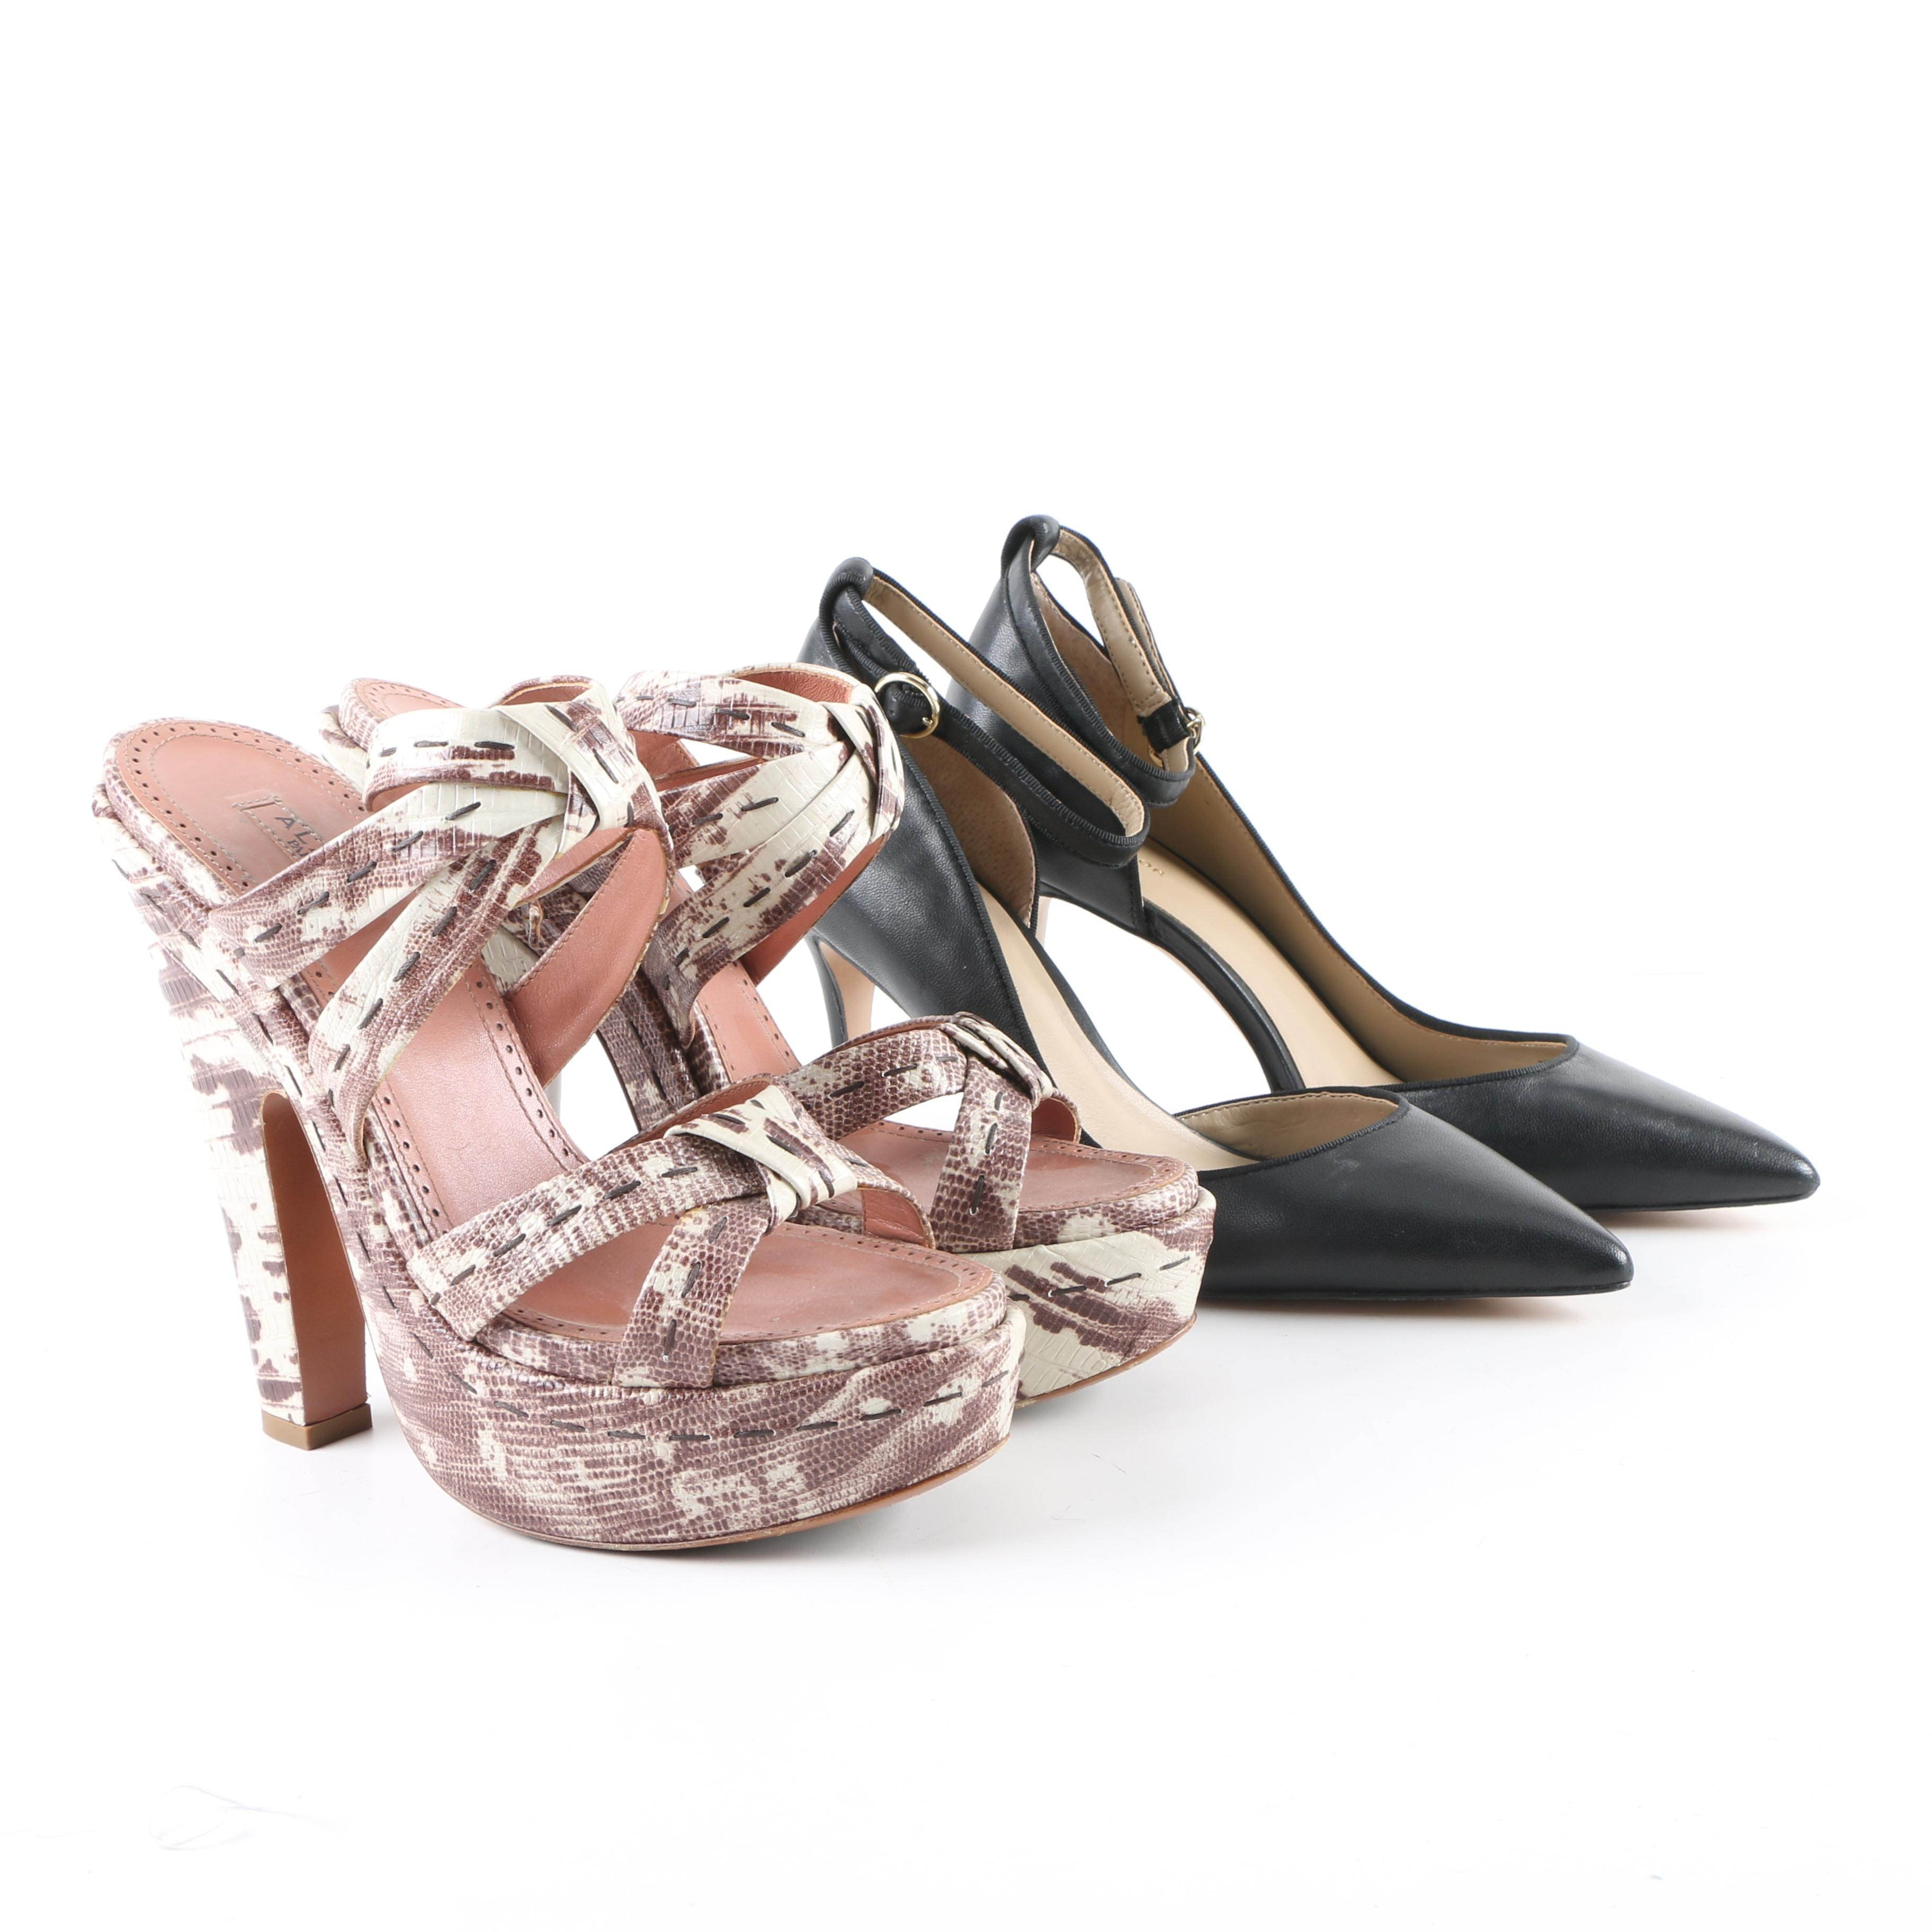 Alaïa of Paris and Ann Taylor Leather High-Heeled Shoes